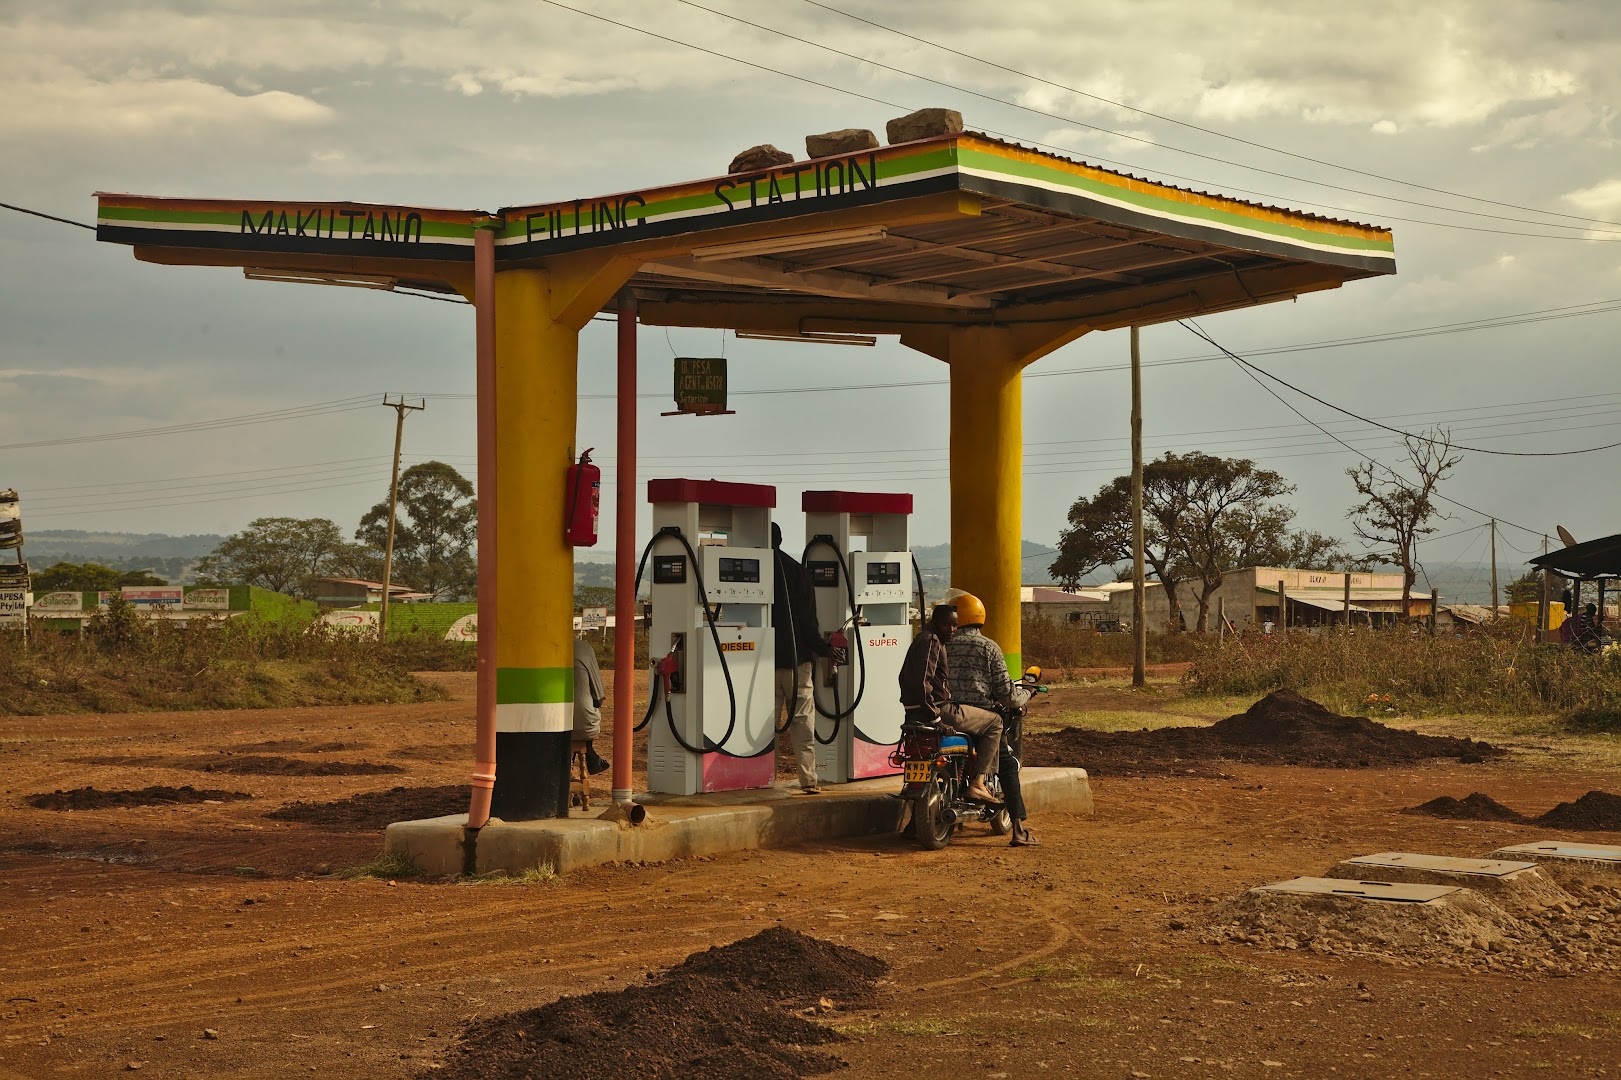 A civilized petrol station